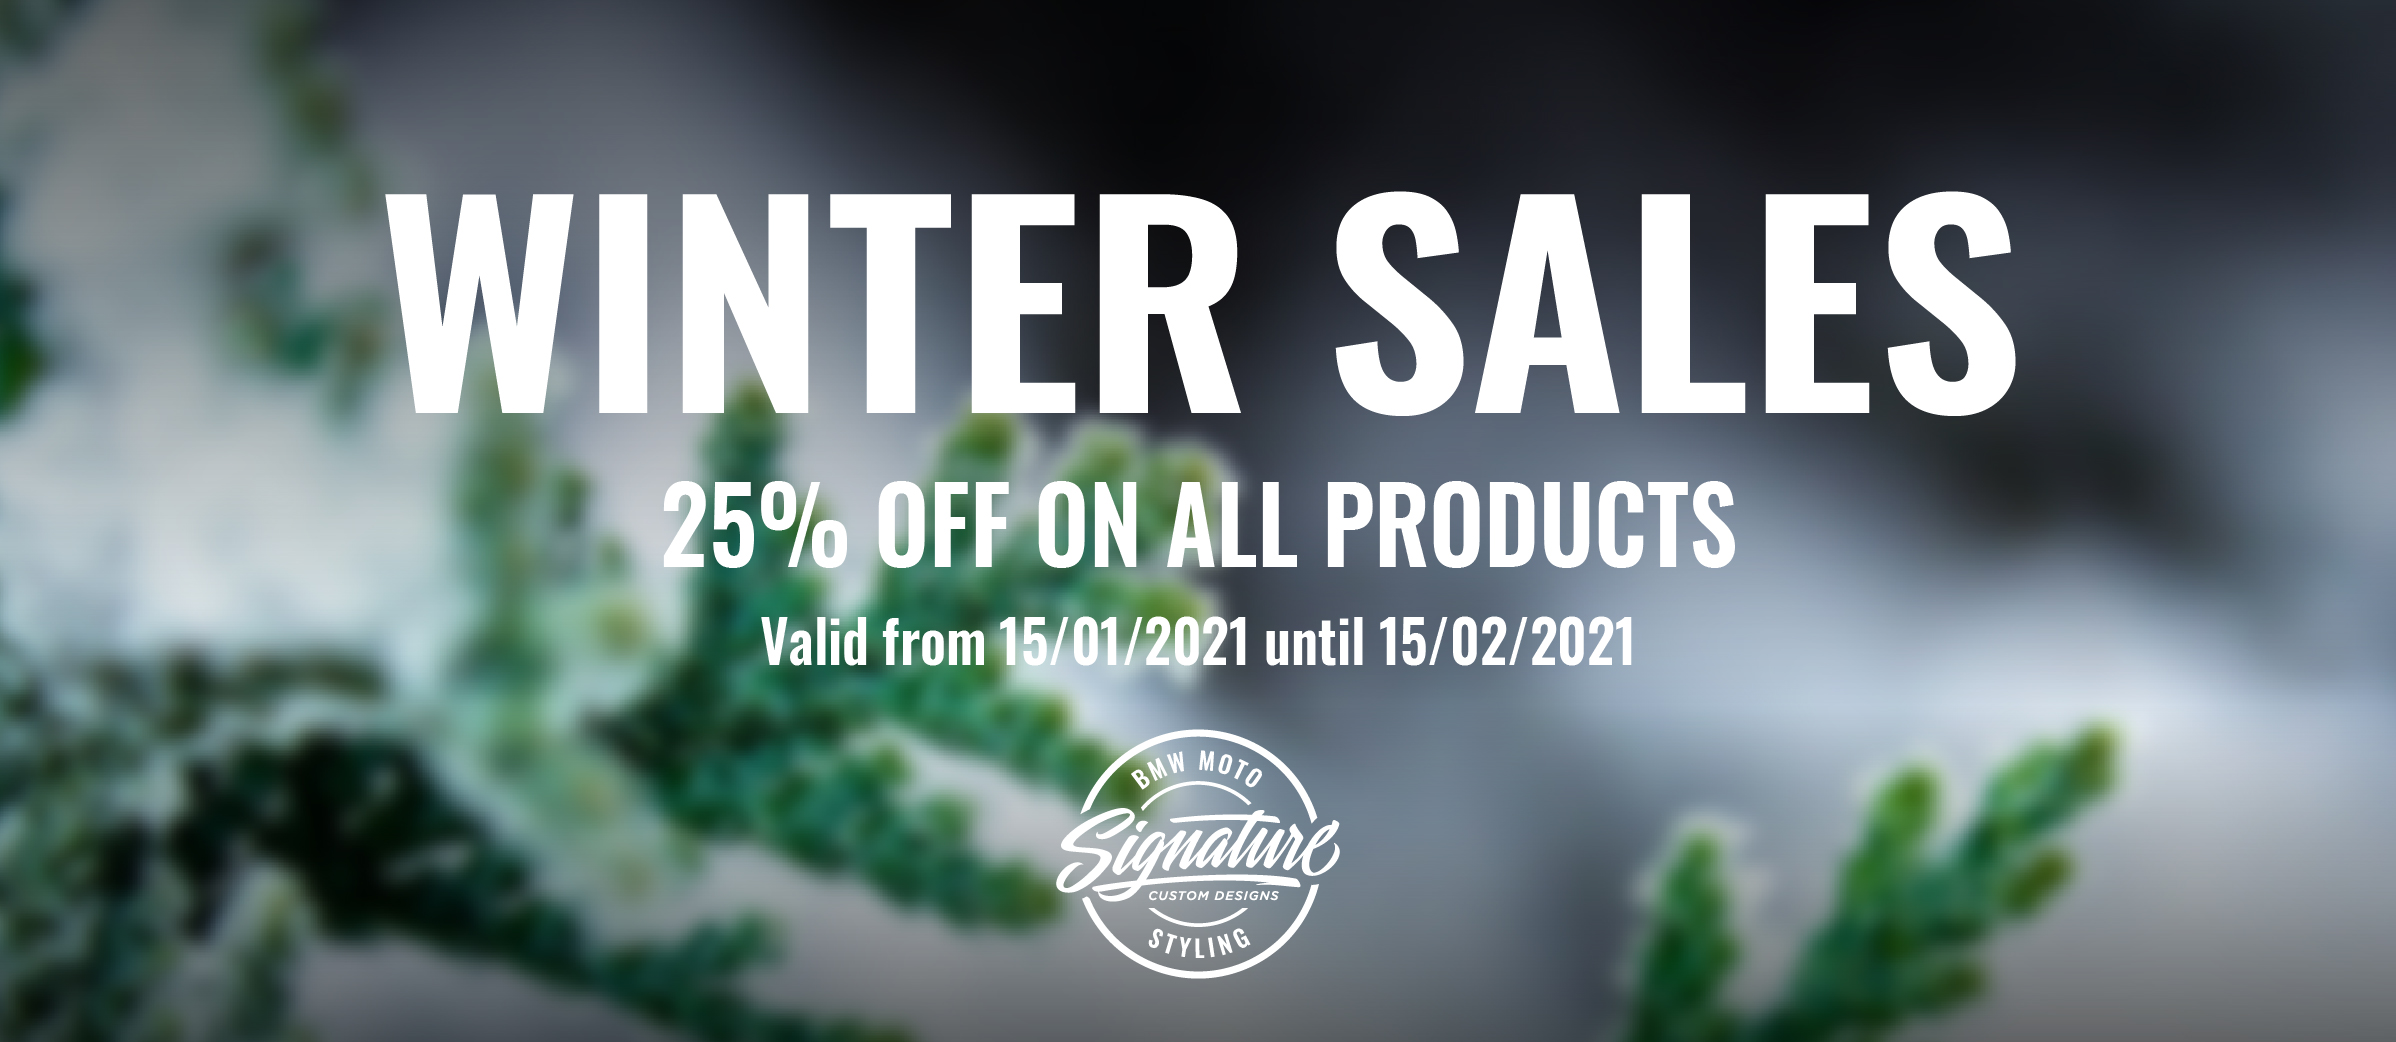 Winter Sales Jan 2021 Website Slider 1150 x 365